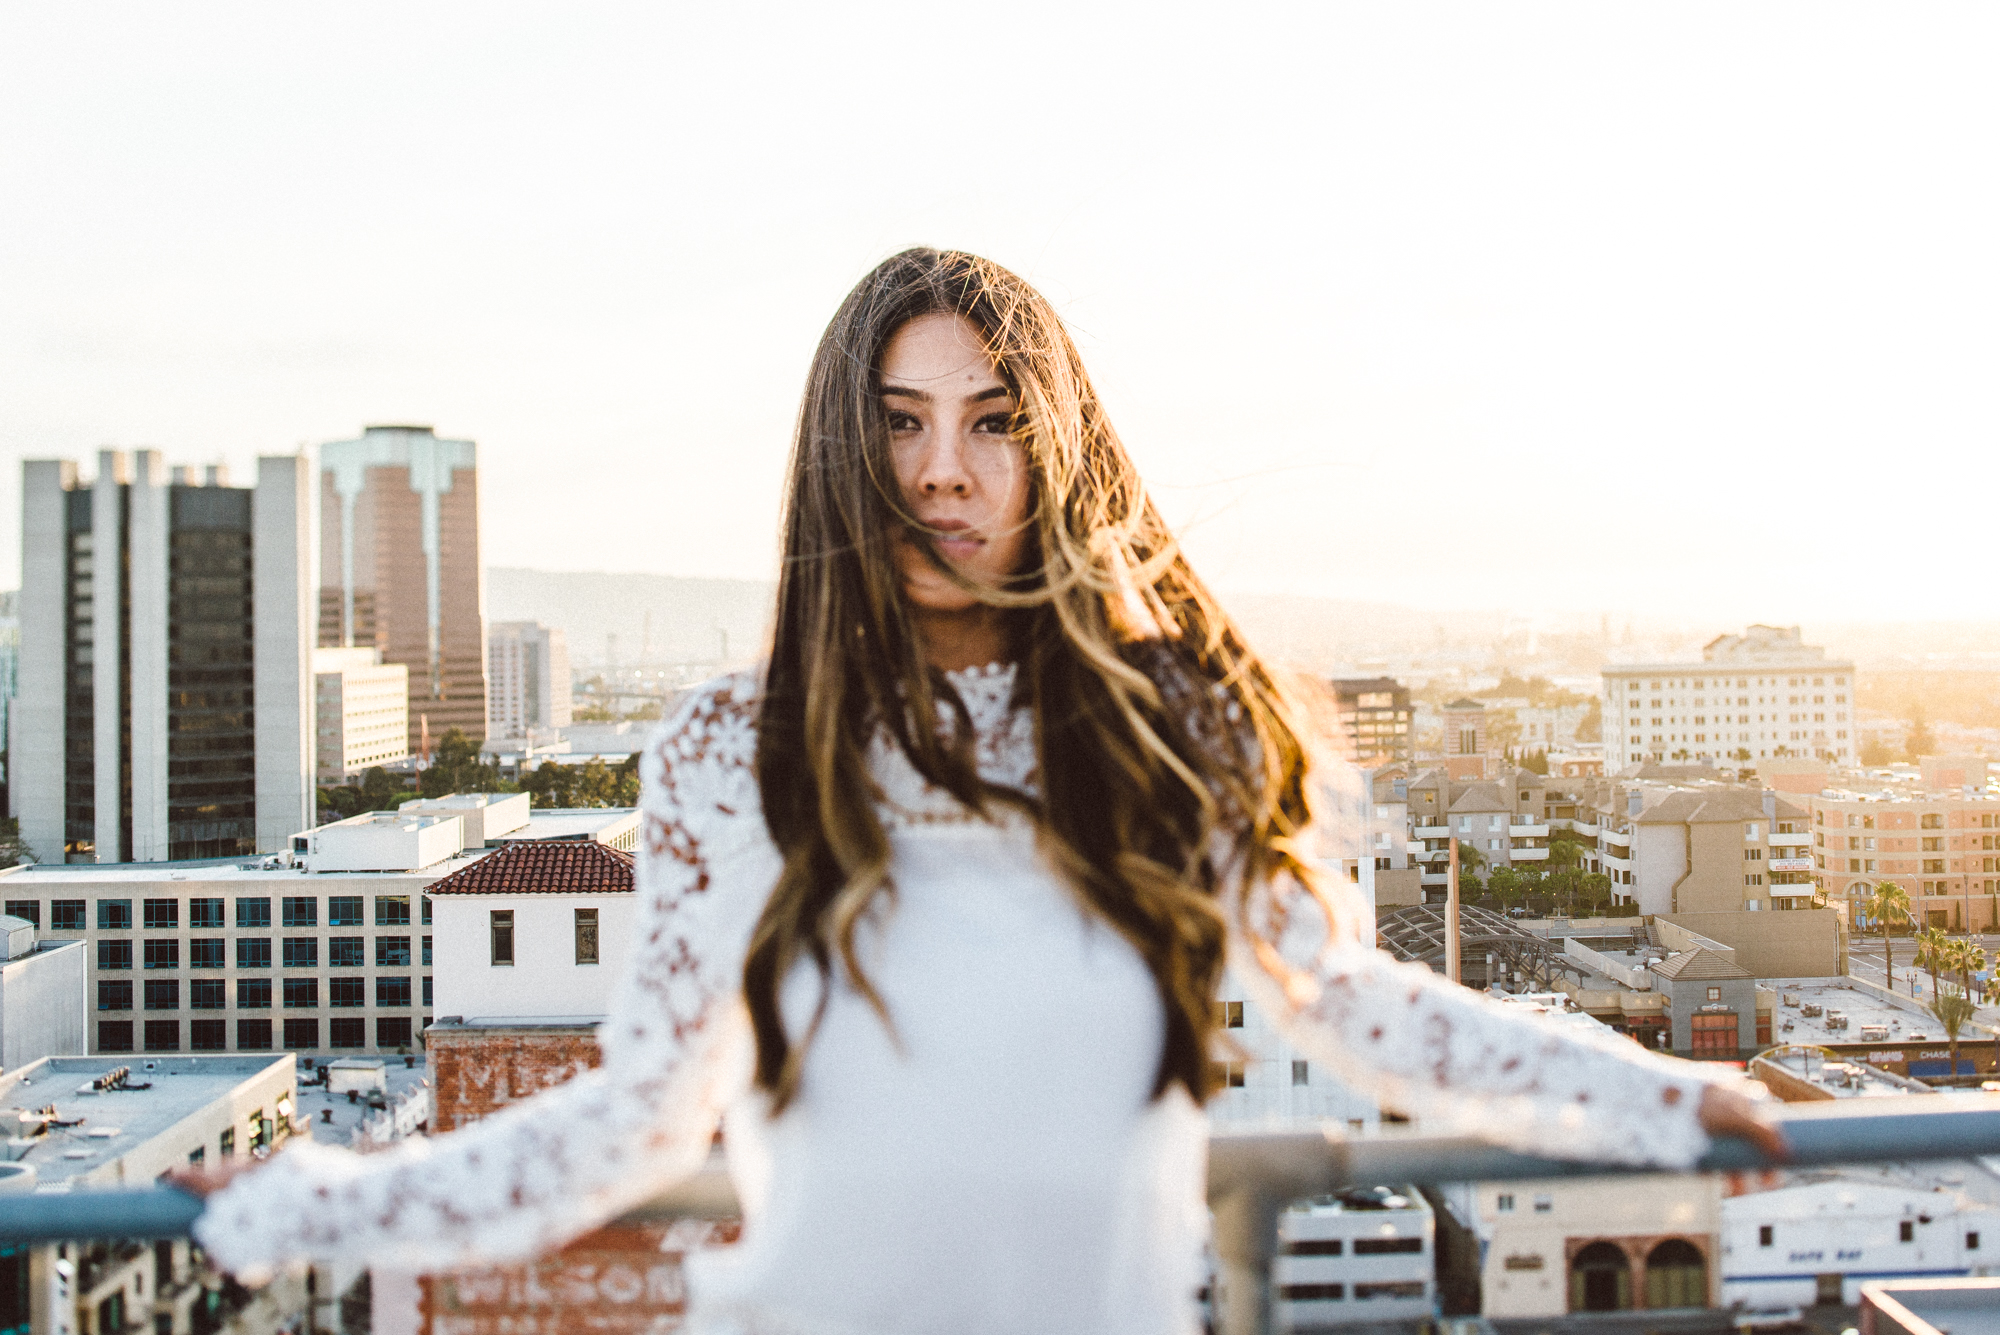 ©Isaiah & Taylor Photography - Los Angeles Photographers - Rooftop Portraits-013.jpg